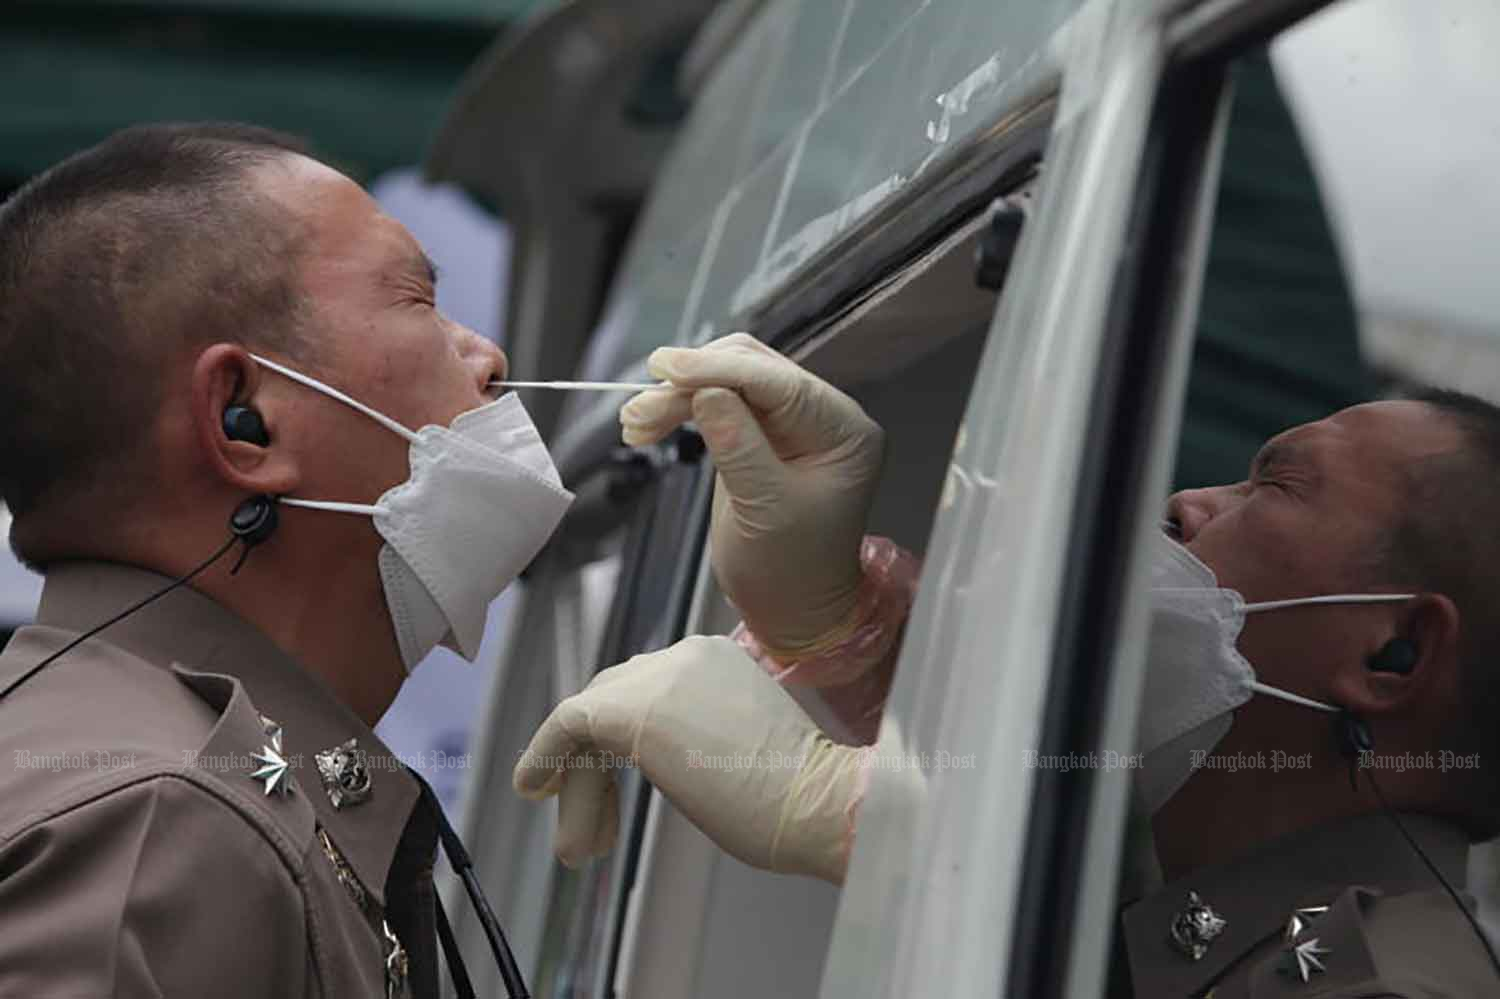 A policeman undergoes a Covid-19 antigen test in the compound of Phlap Phla Chai 1 and 2 police stations in Samphanthawong district, Bangkok, on Friday. (Photo: Apichart Jinakul)